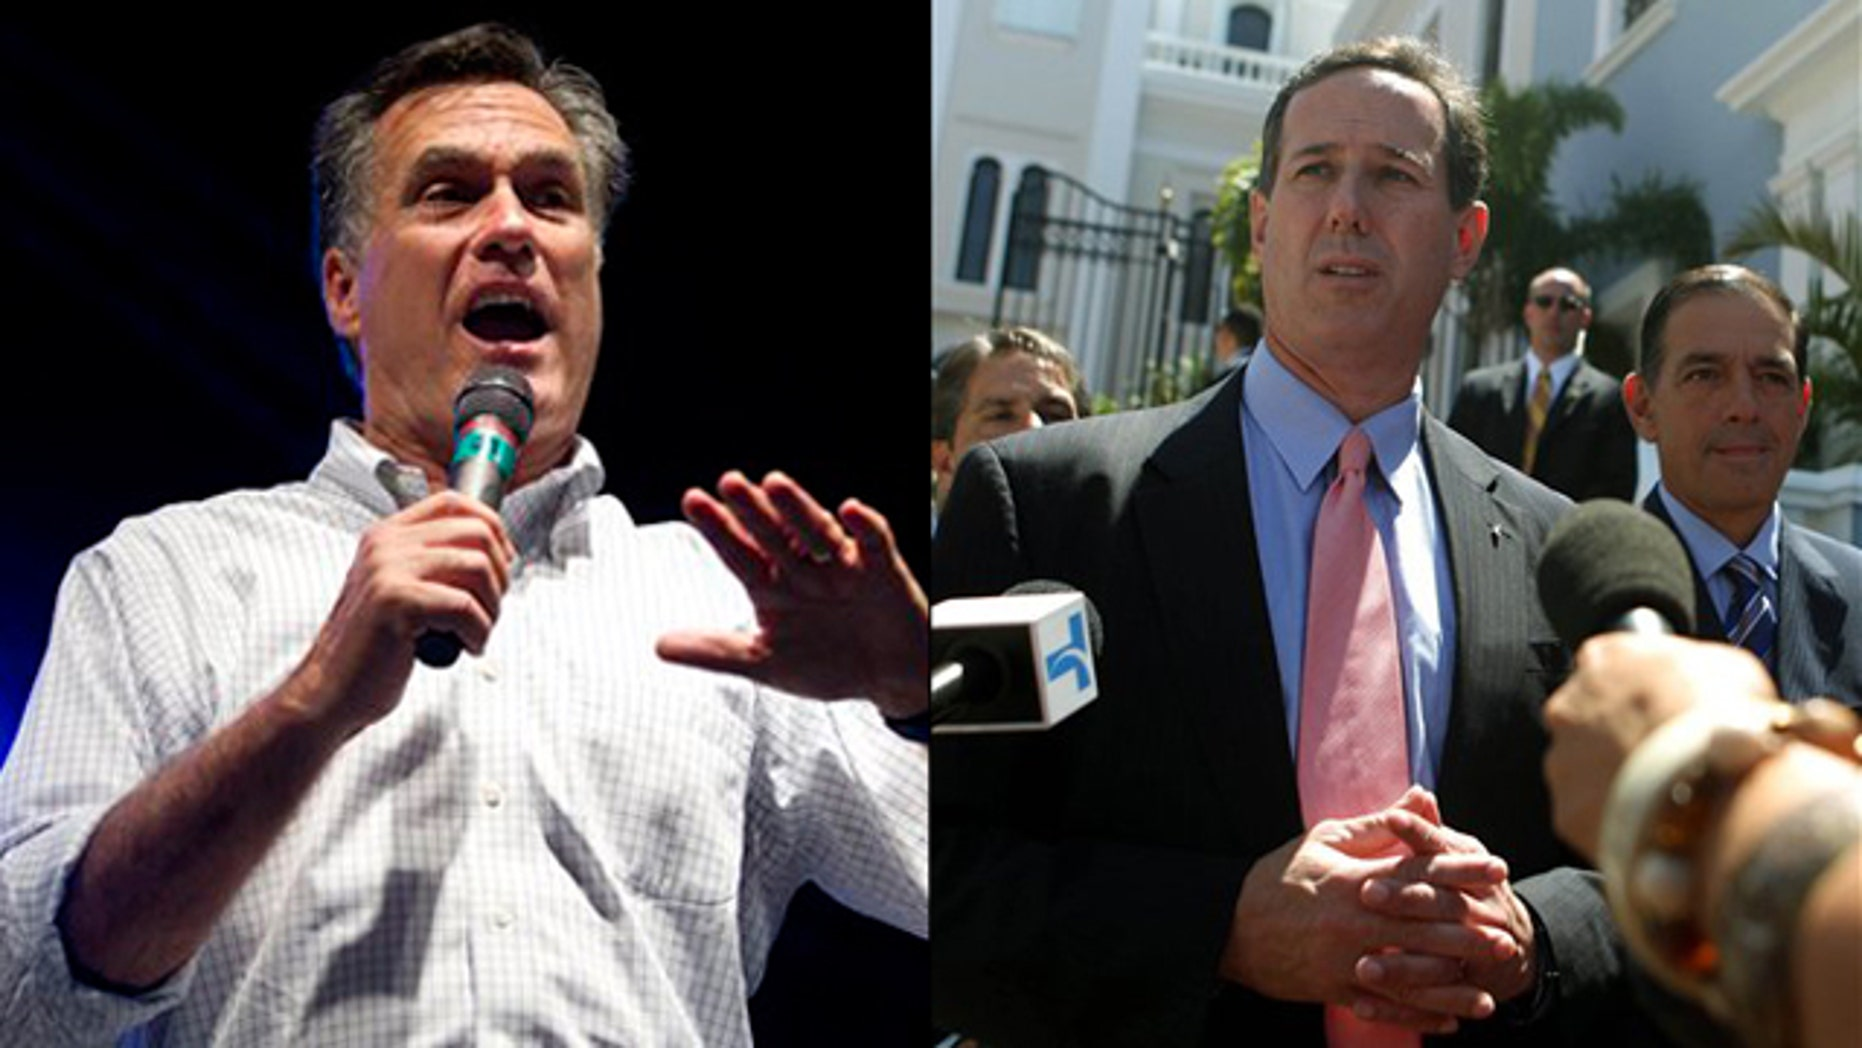 Mitt Romney, left, and Rick Santorum are shown campaigning in Puerto Rico.